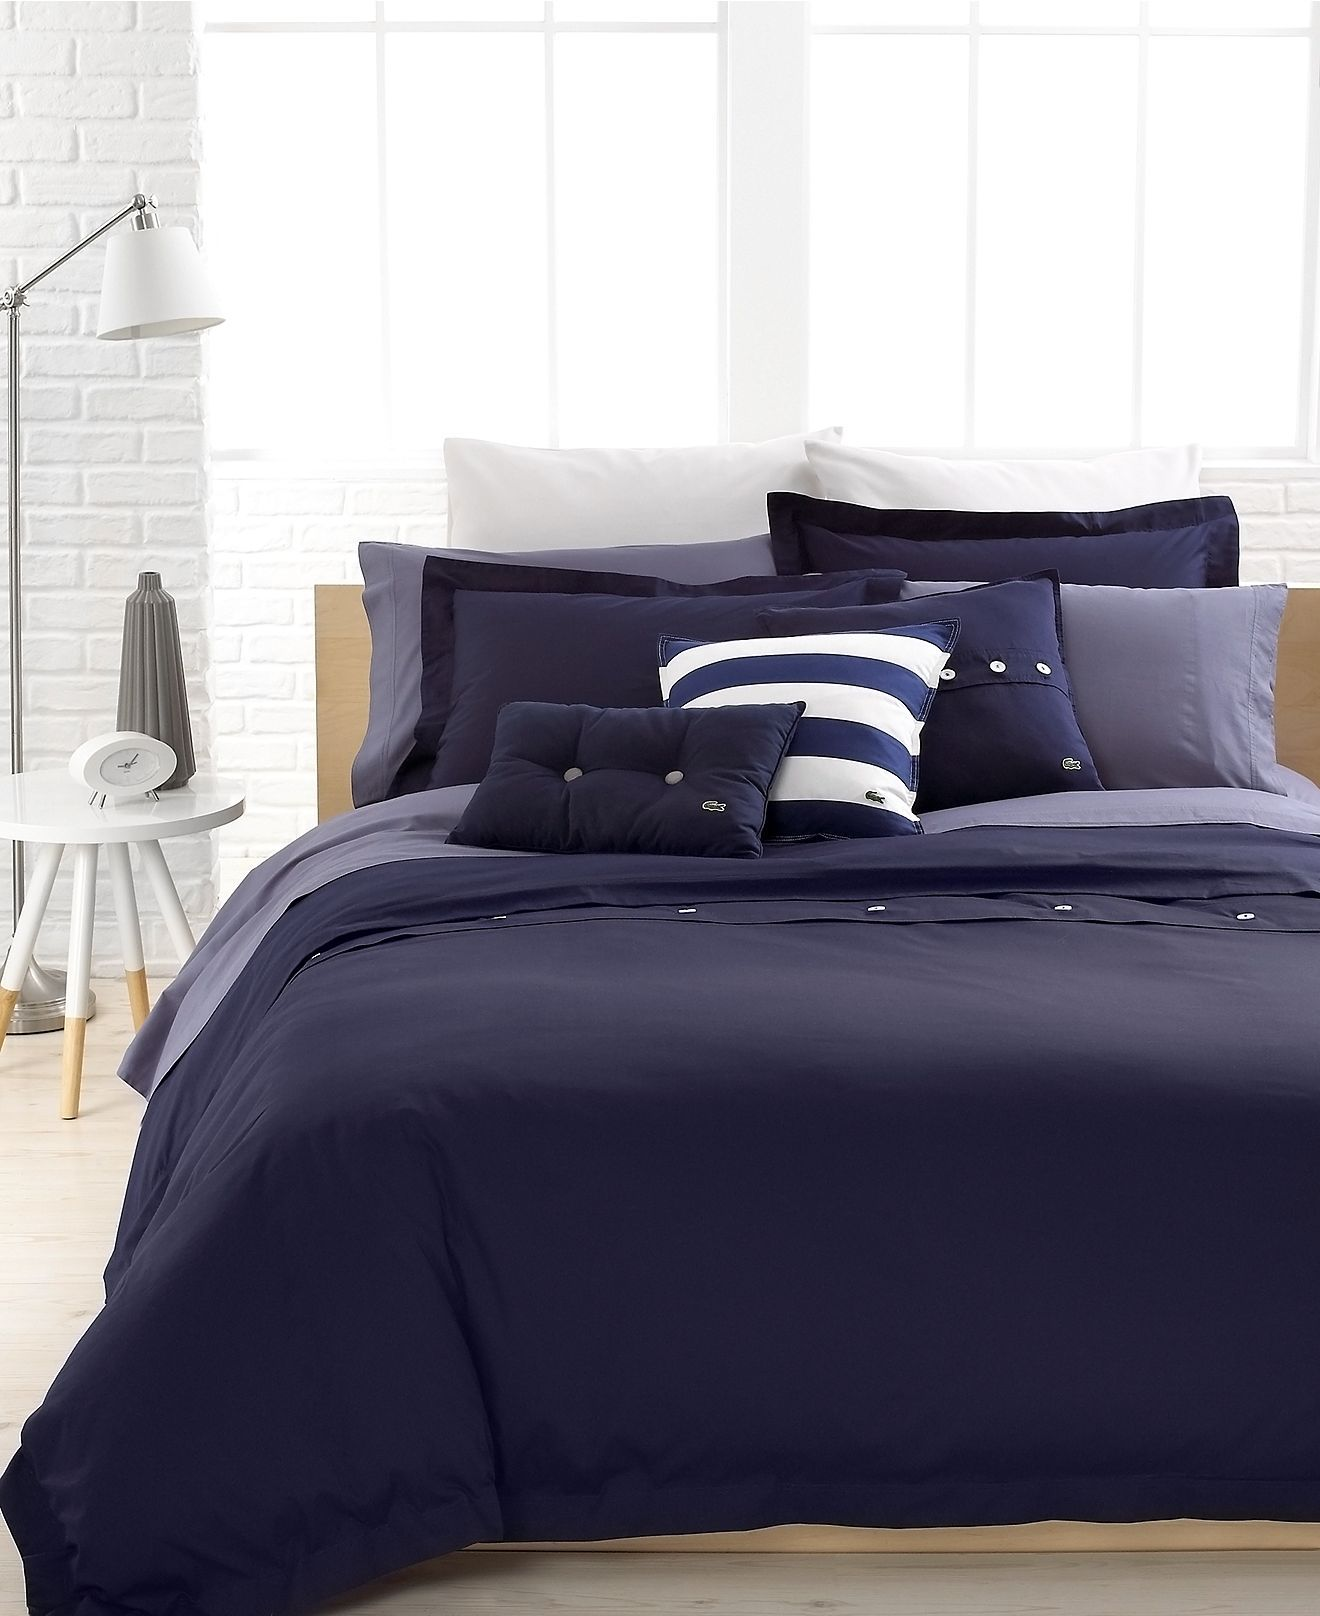 Winners Duvet Covers Lacoste Bedding Solid Peacoat Brushed Twill Comforter And